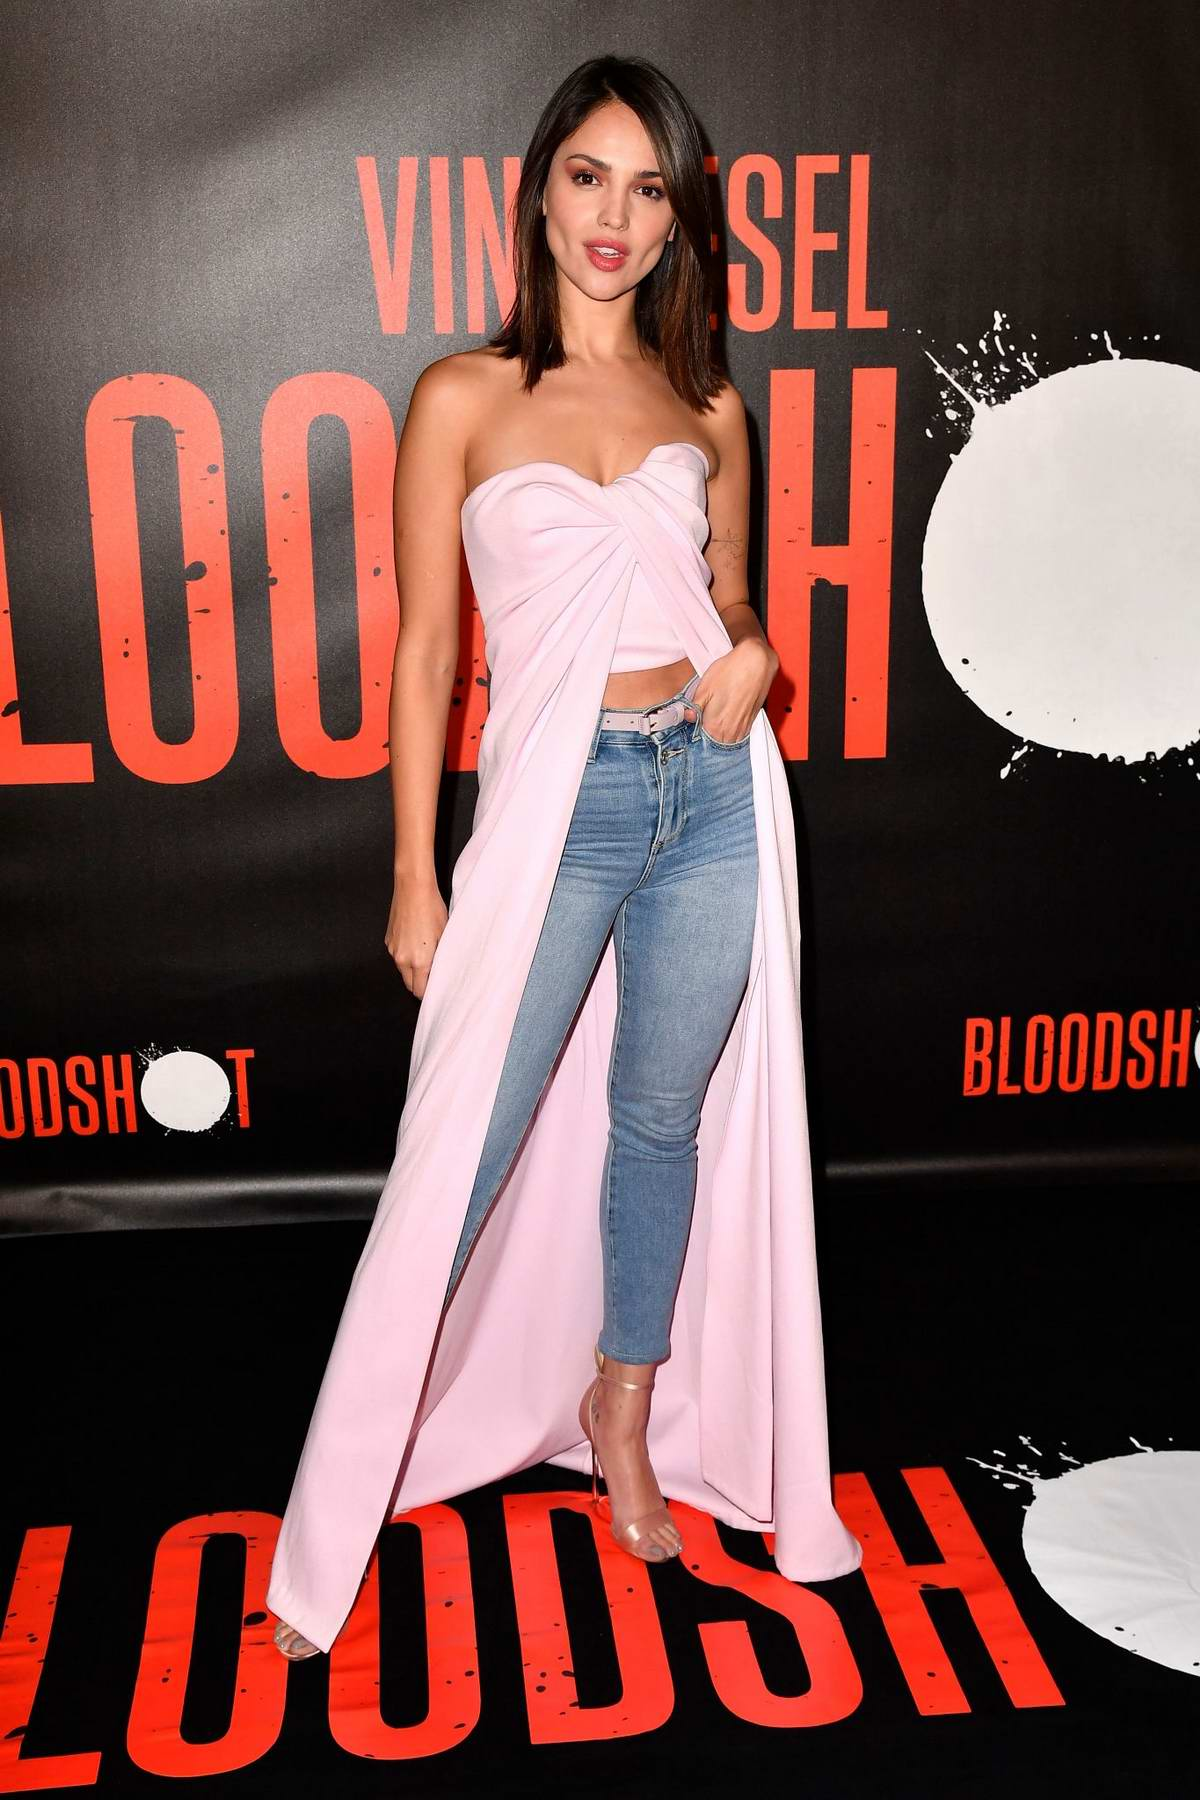 Eiza Gonzalez attends a Photocall for 'Bloodshot' in West Hollywood, California